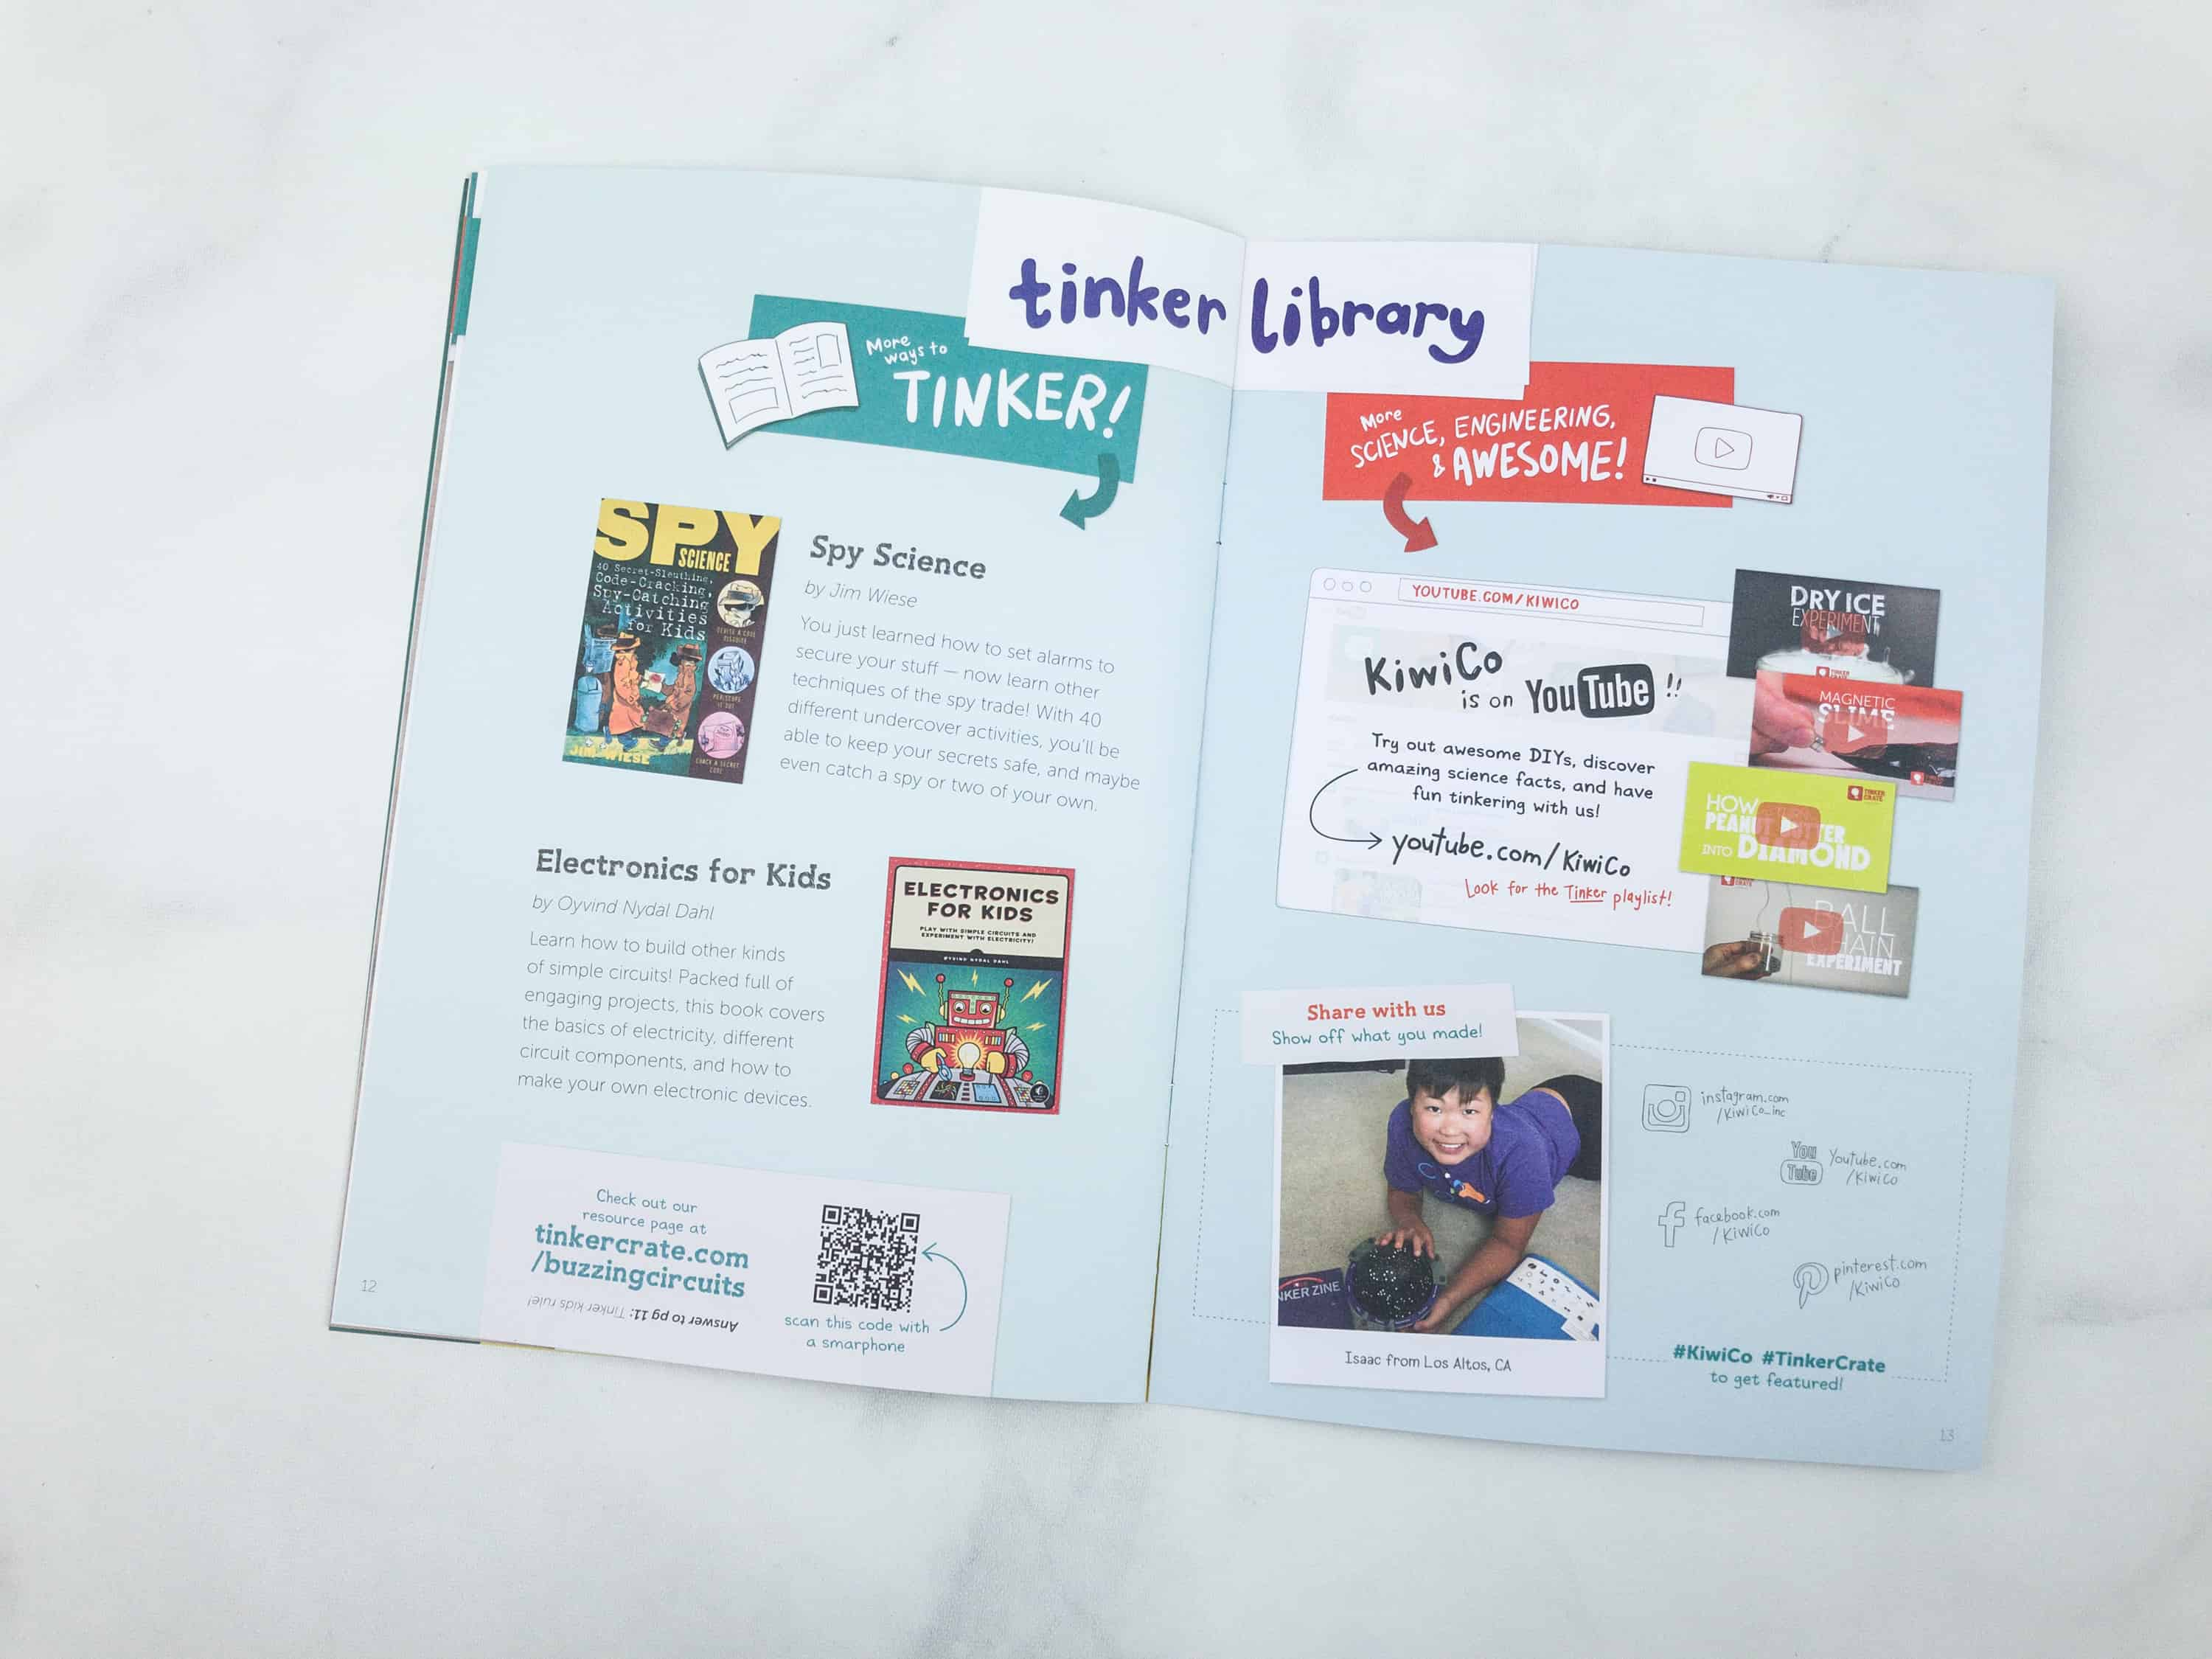 Tinker Crate Review Coupon Buzzing Circuits Hello Subscription Simple Intercom Circuit Electronic Projects Zine Also Has Book Suggestions For Kids Which Includes Spy Science And Electronics